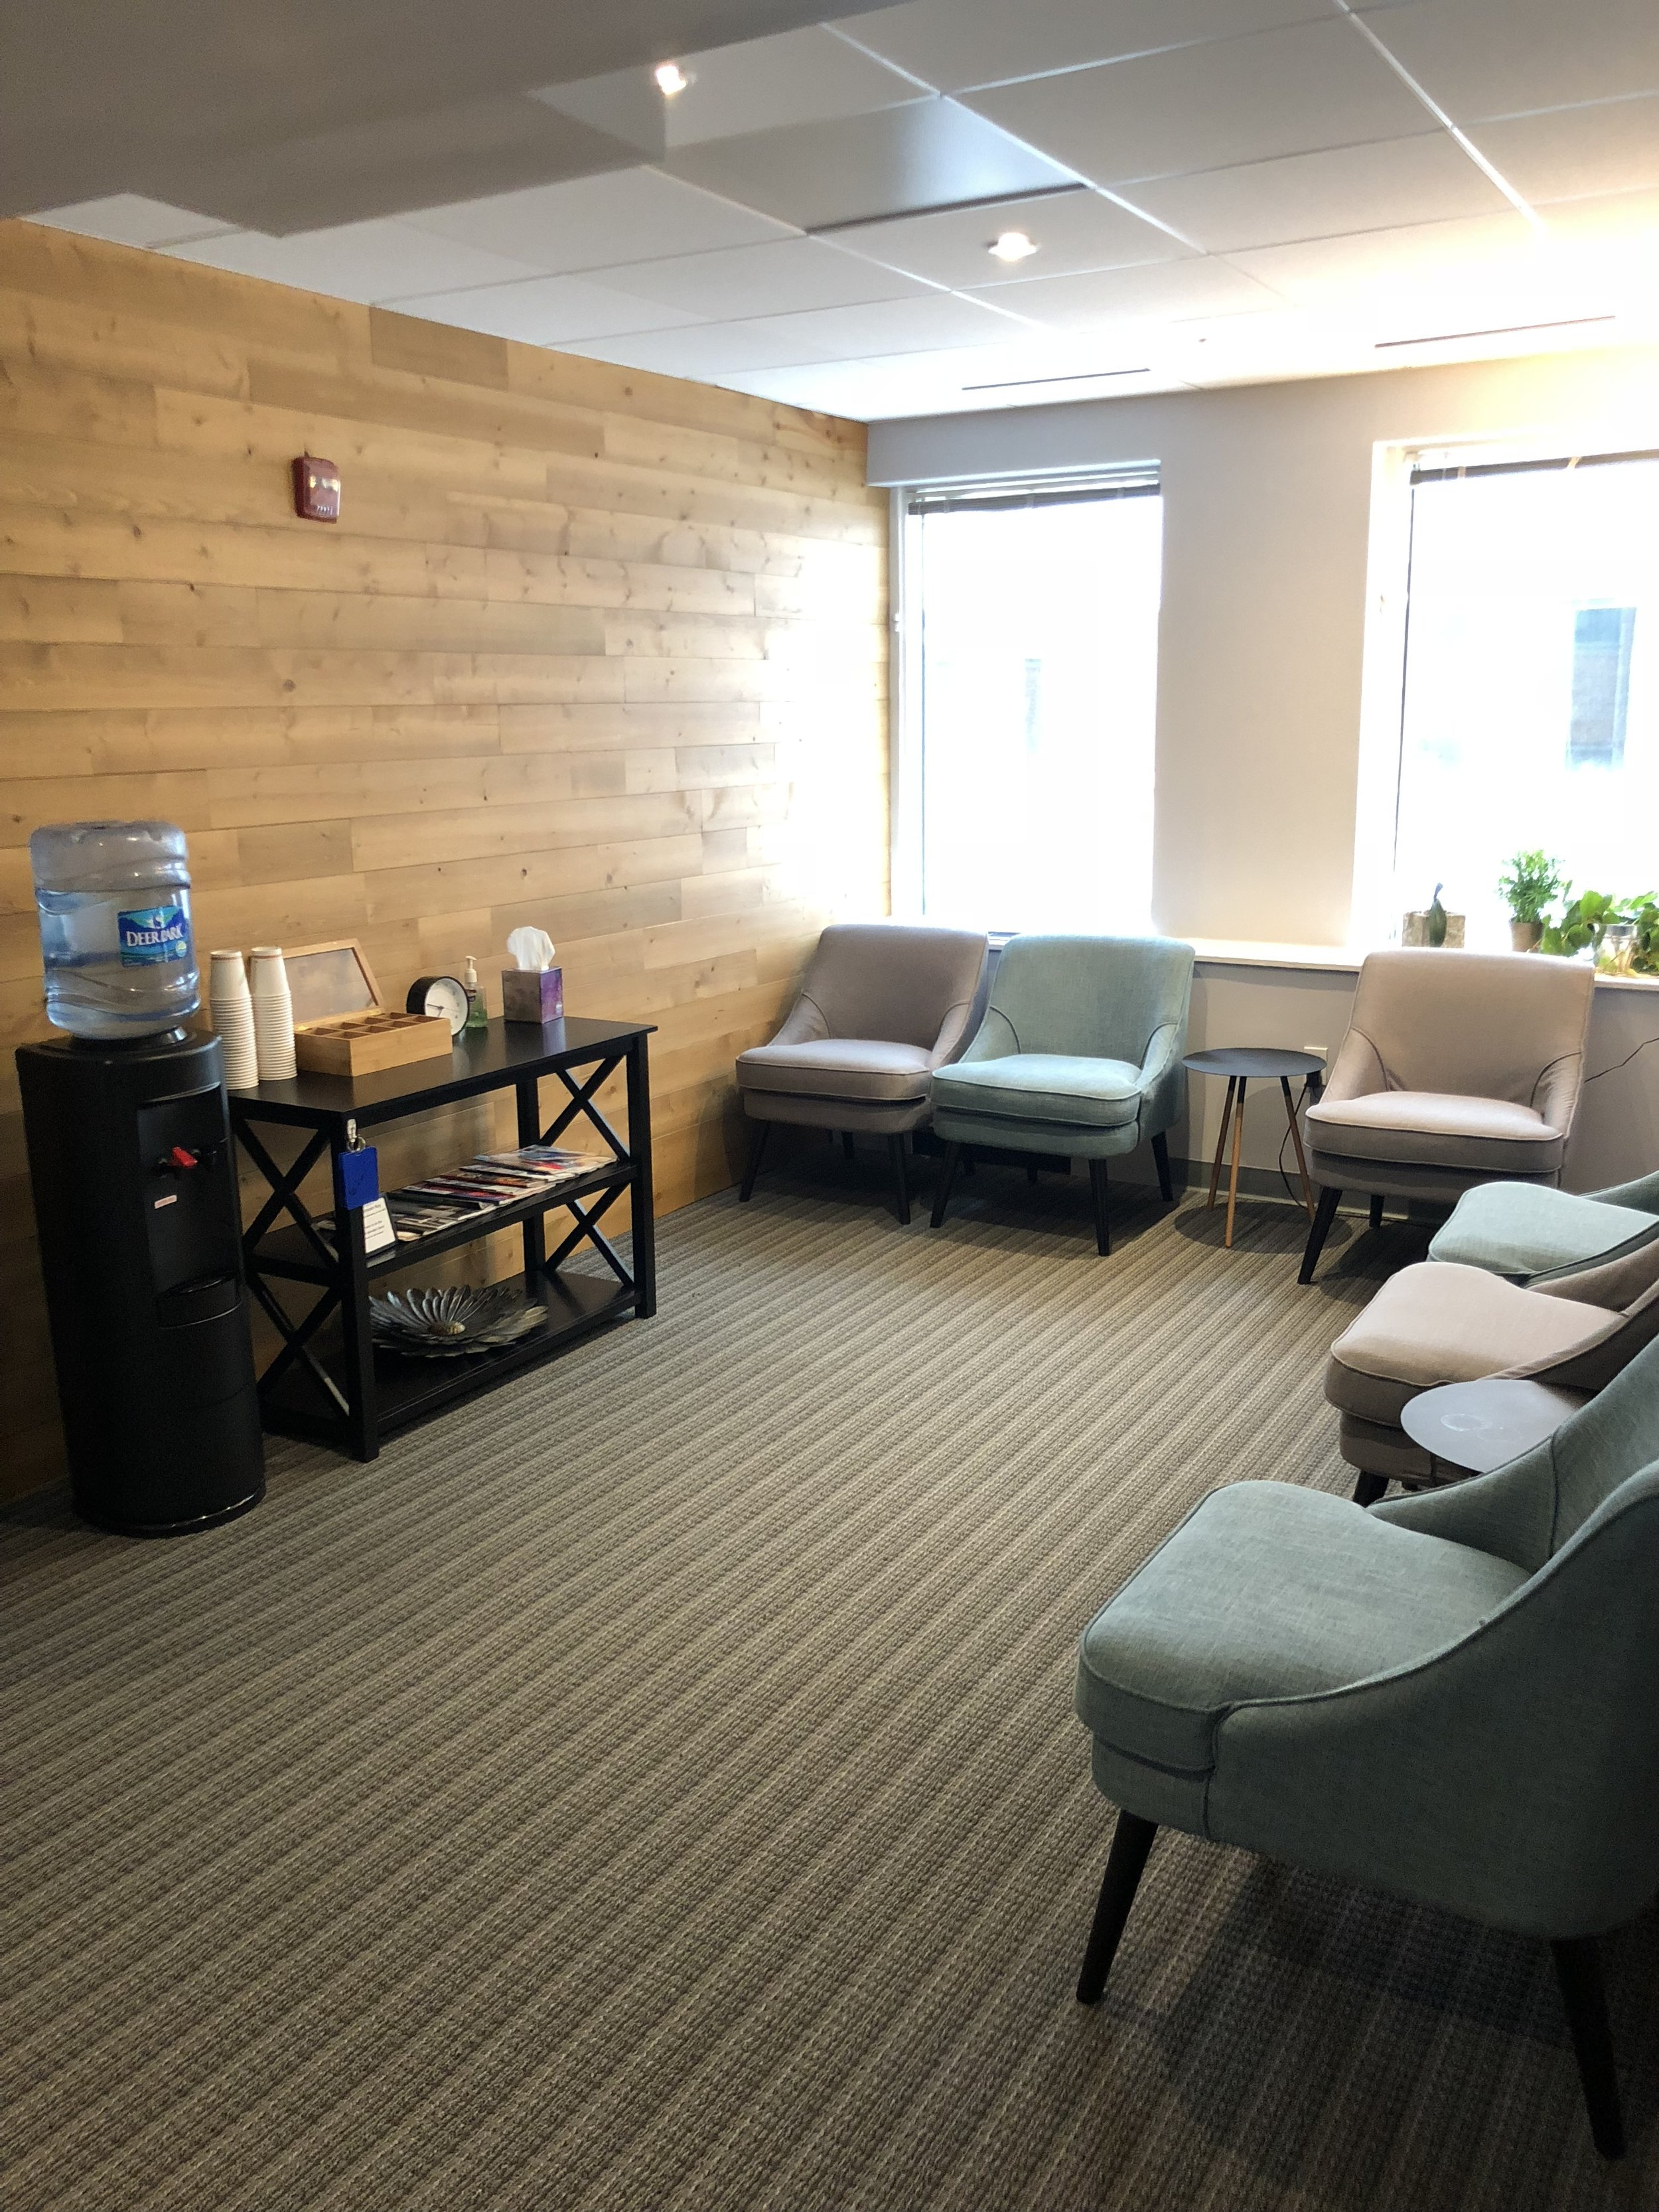 The suite's spacious waiting area offers water and an assortment of teas.